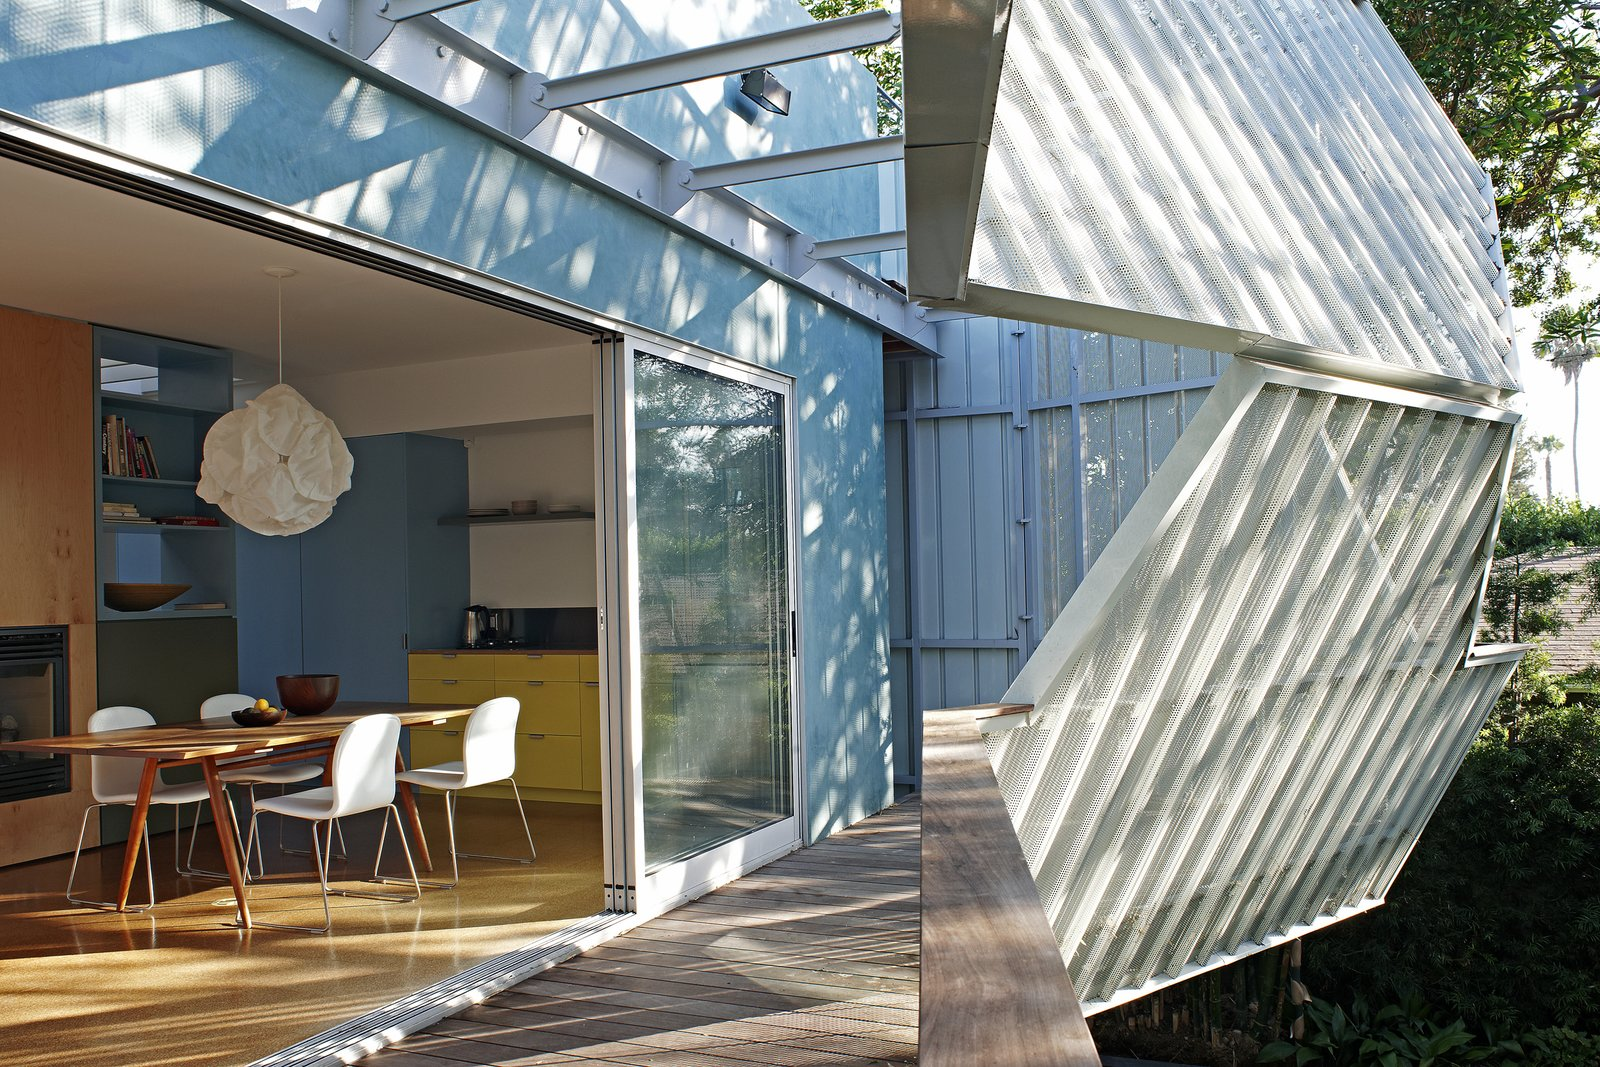 #interior #inside #indoor #exterior #outside #outdoor #landscape #table #chair #diningroom #kitchen #fireplace #color #aluminum #metal #eco #green #sustainable #Venice #California #KevinDalyArchitects  Venice Residence by Kevin Daly Architects